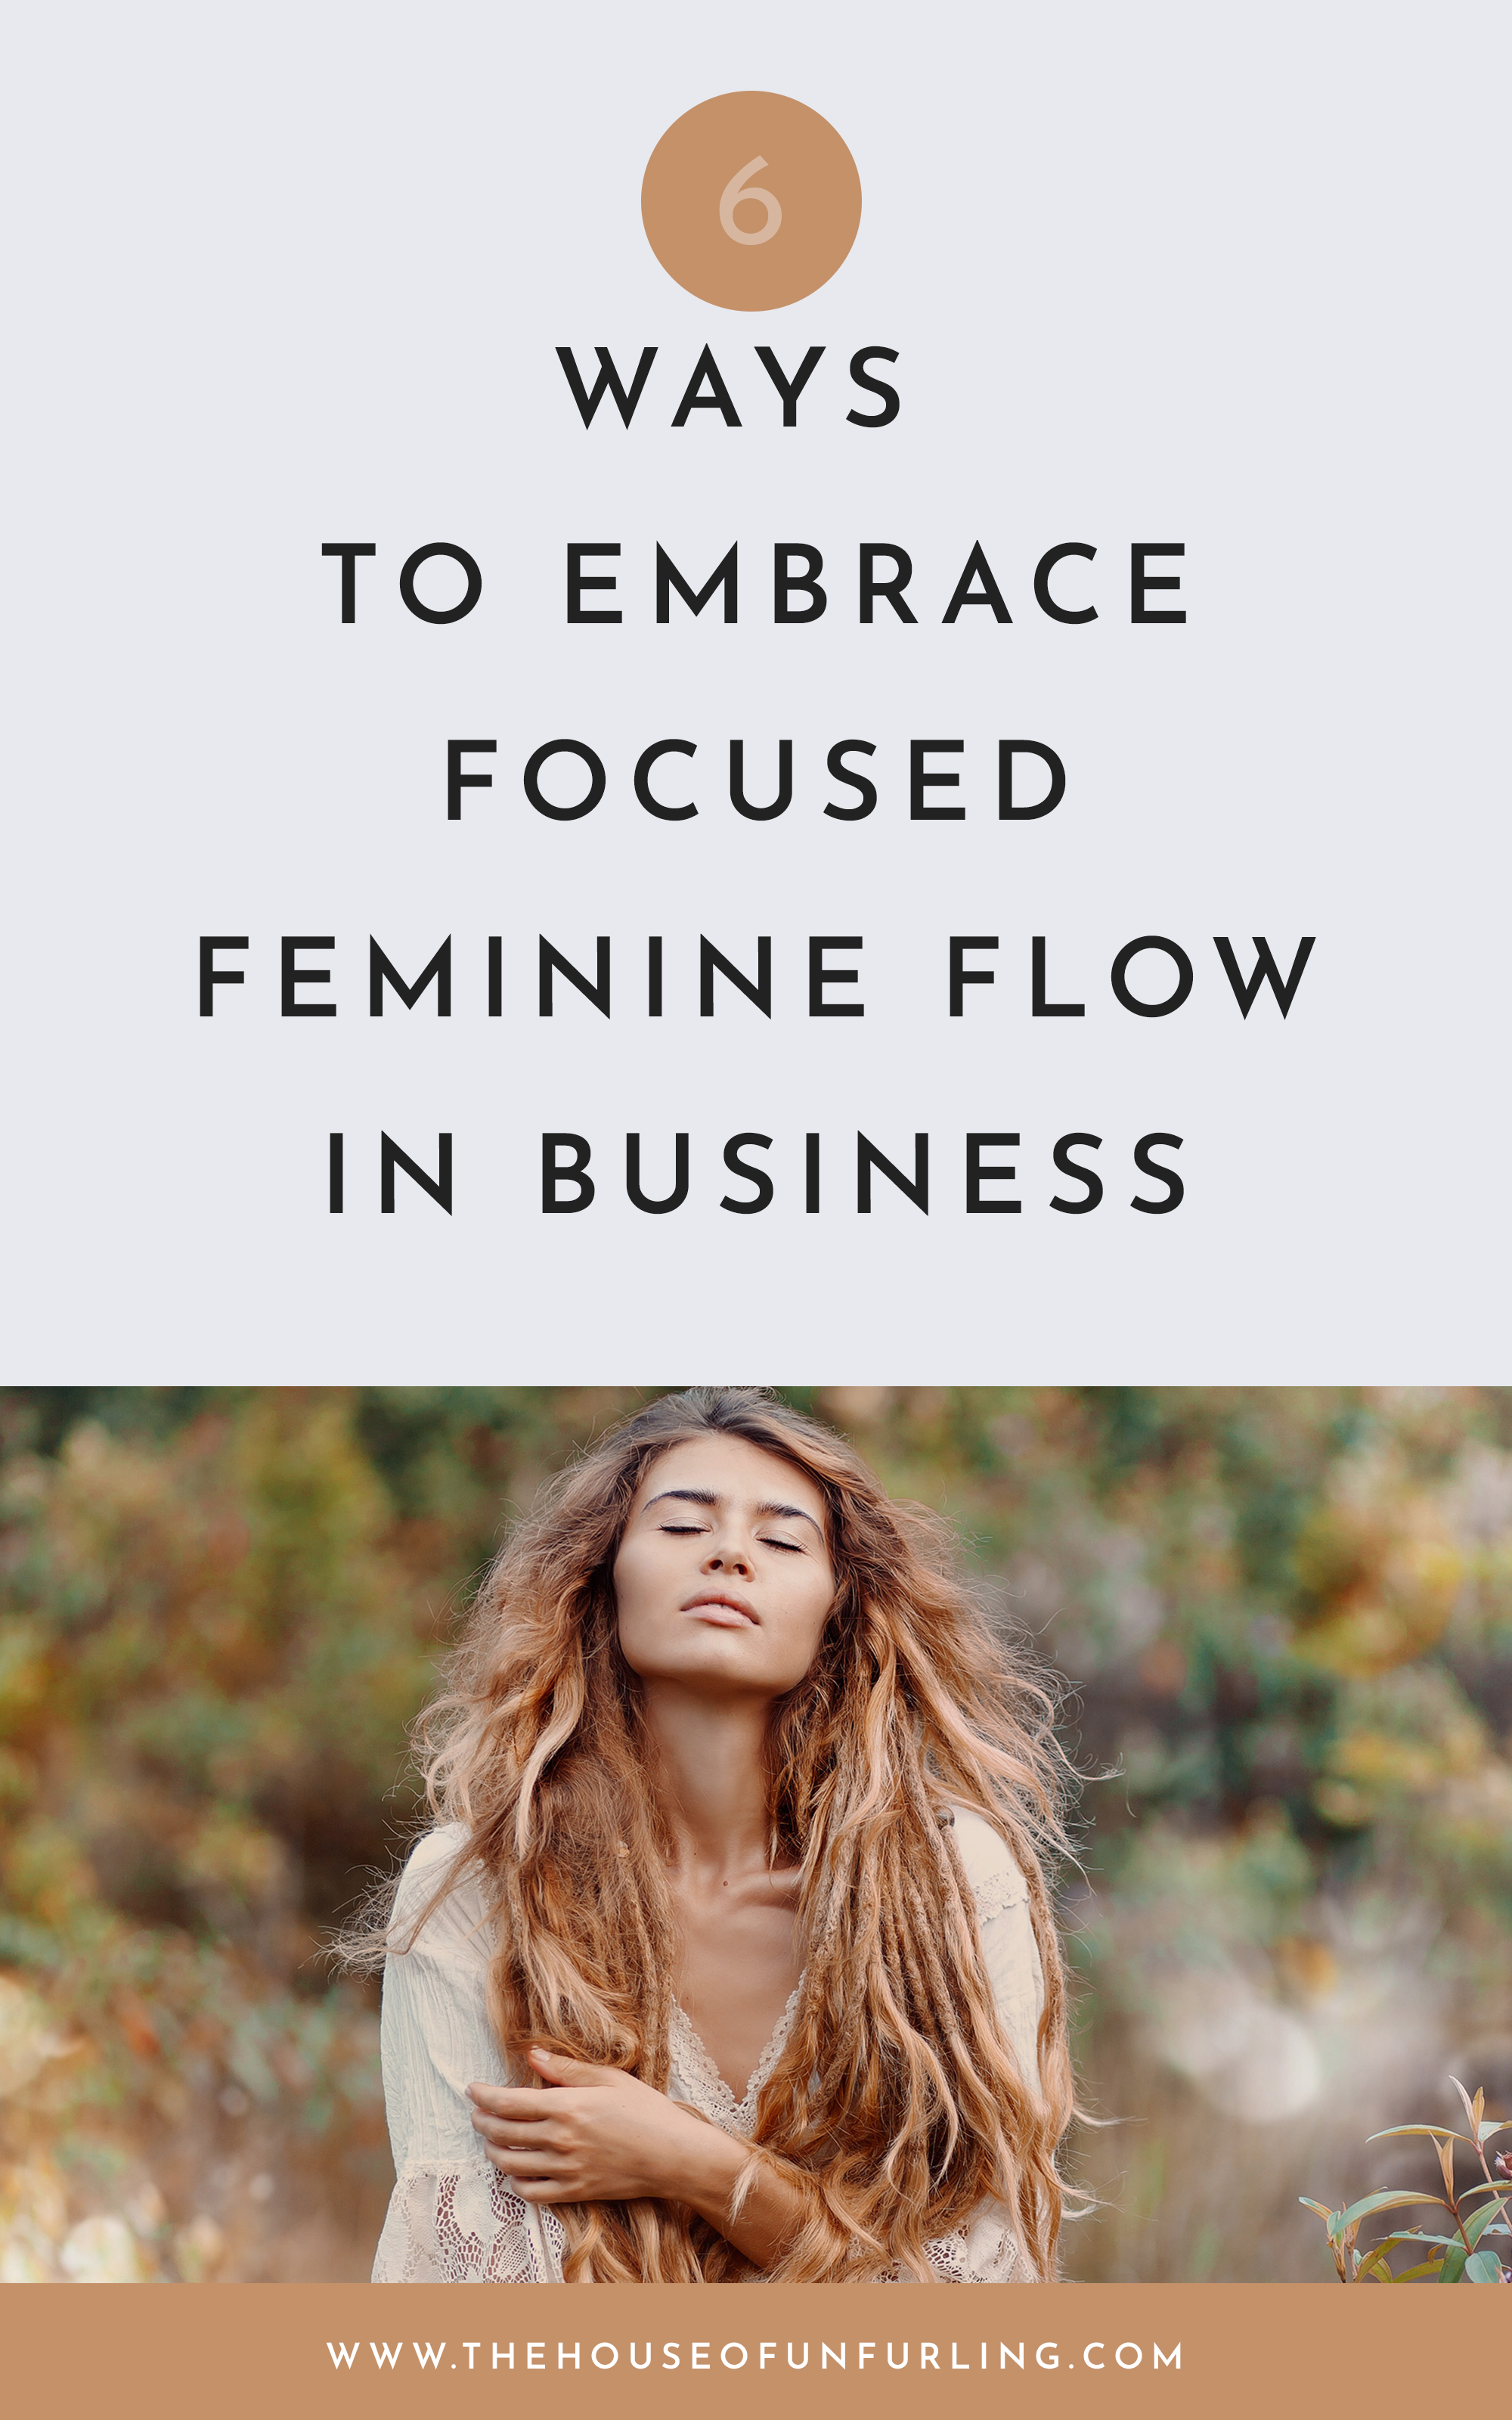 CLICK THROUGH TO READ: 6 keys to focused feminine flow in business. with fierce love, Kath. find more on kathleensaelens.com